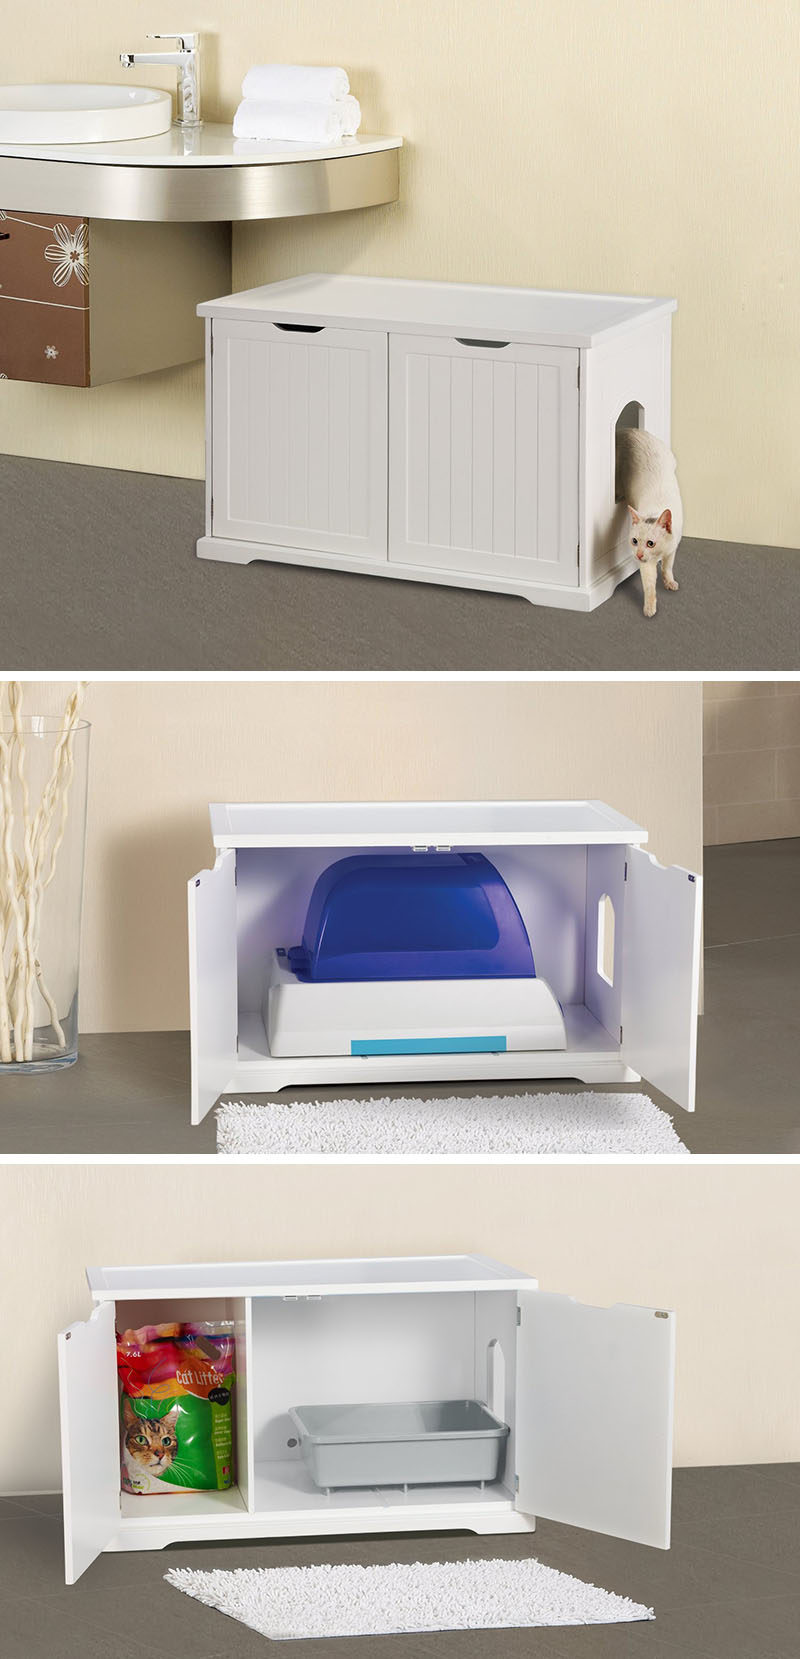 10 Ideas For Hiding Your Cats Litter Box // This bench can either have a divider in it or be completely open, making it good for both small litter trays or larger litter boxes.